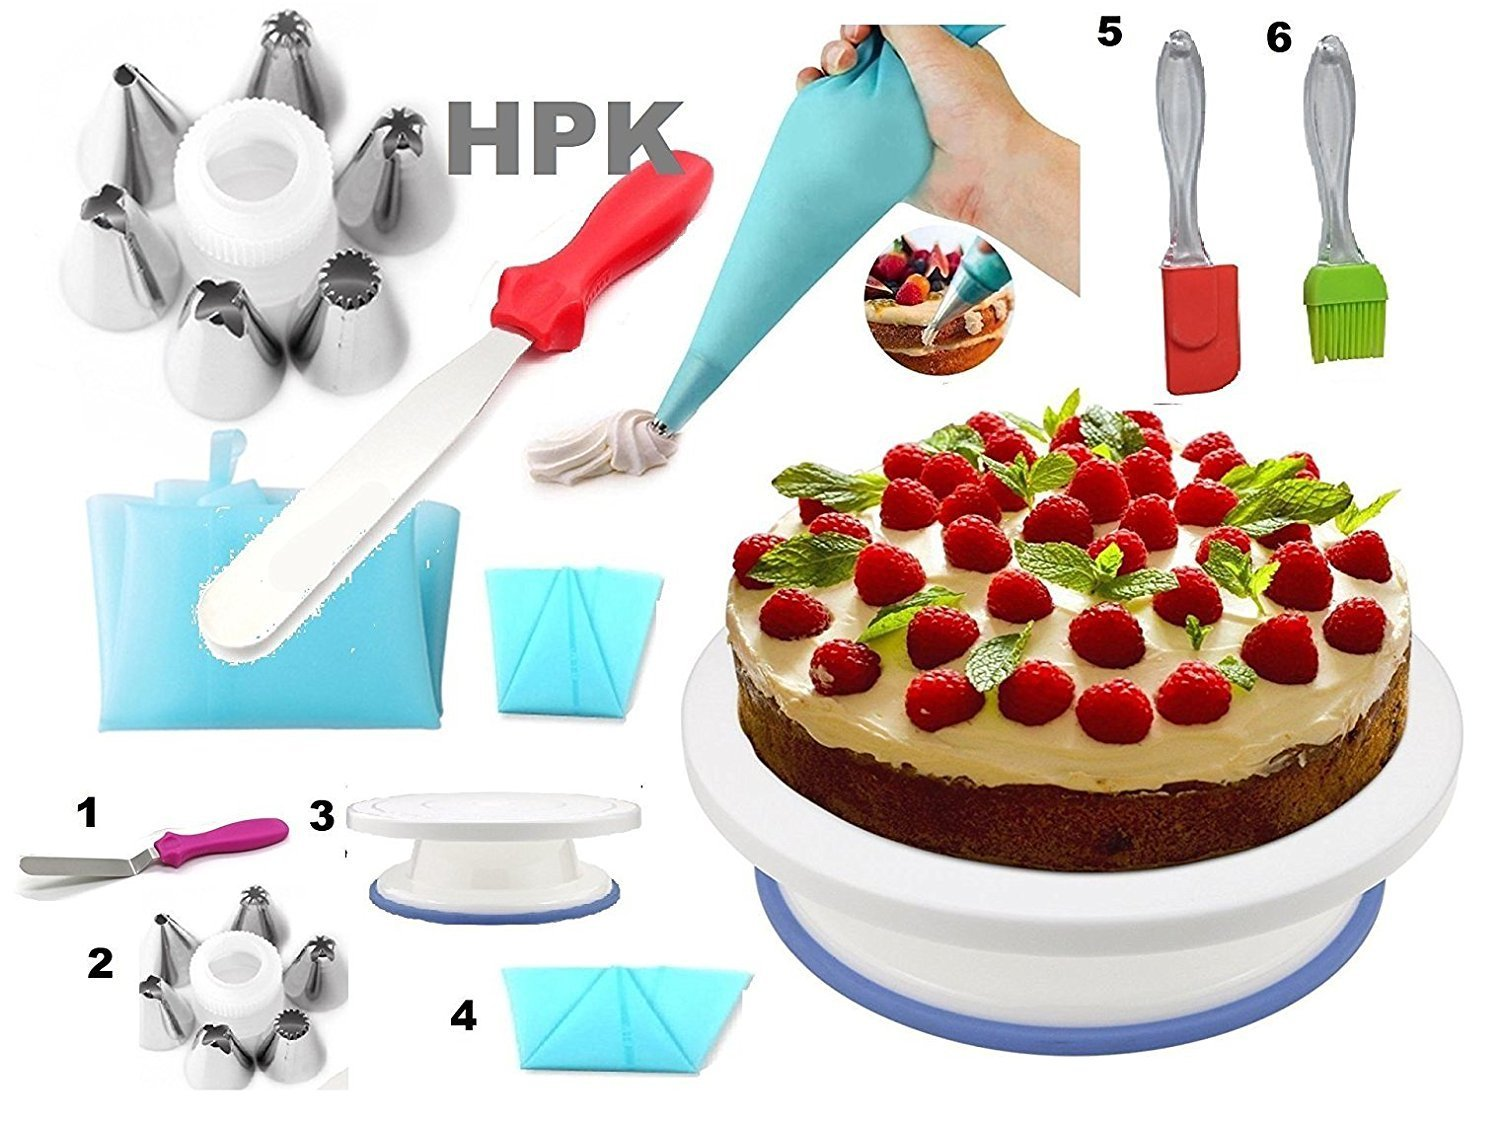 Cake Decoration Tools Set Turn Full Rotating Round Table With Accessories Tools